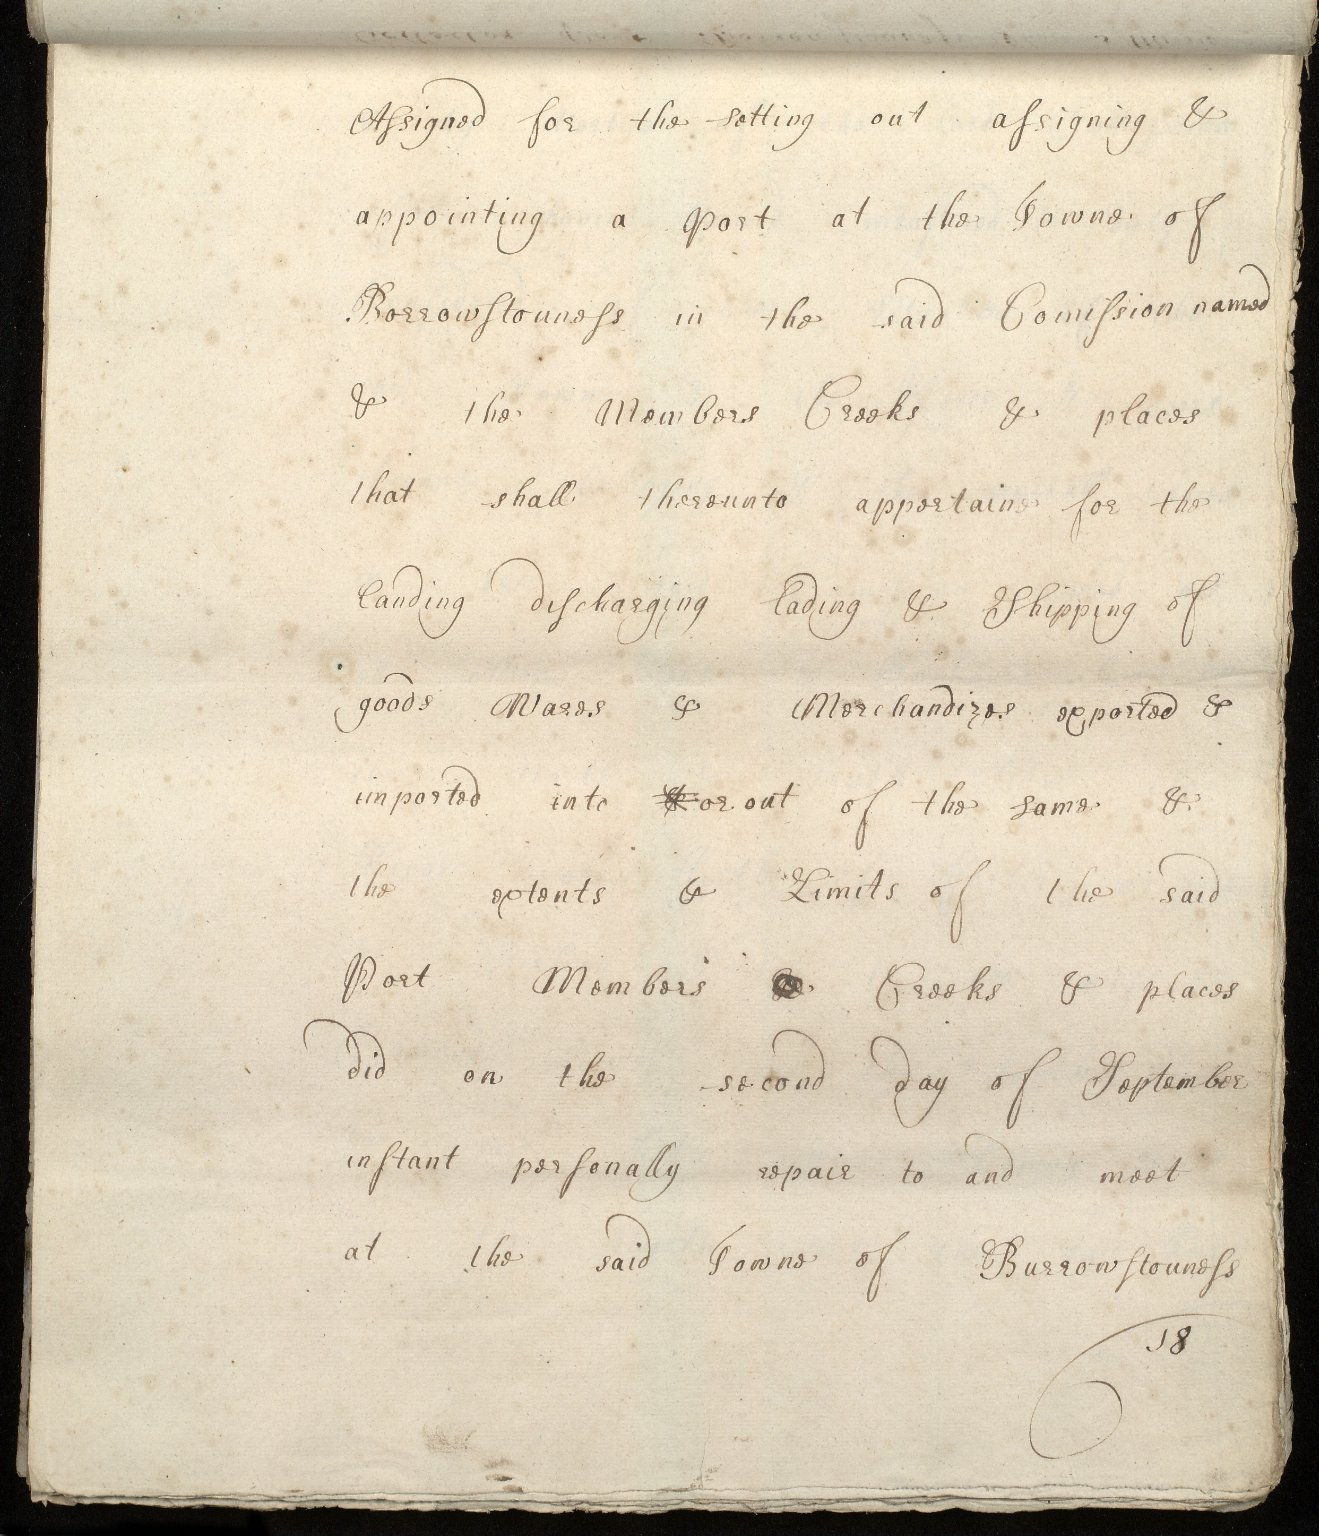 [Commission by Queen Anne to John Adair and others to appoint the town of Borrowstounness (Bo'ness) to be a port and to fix the bounds thereof] [18 of 39]